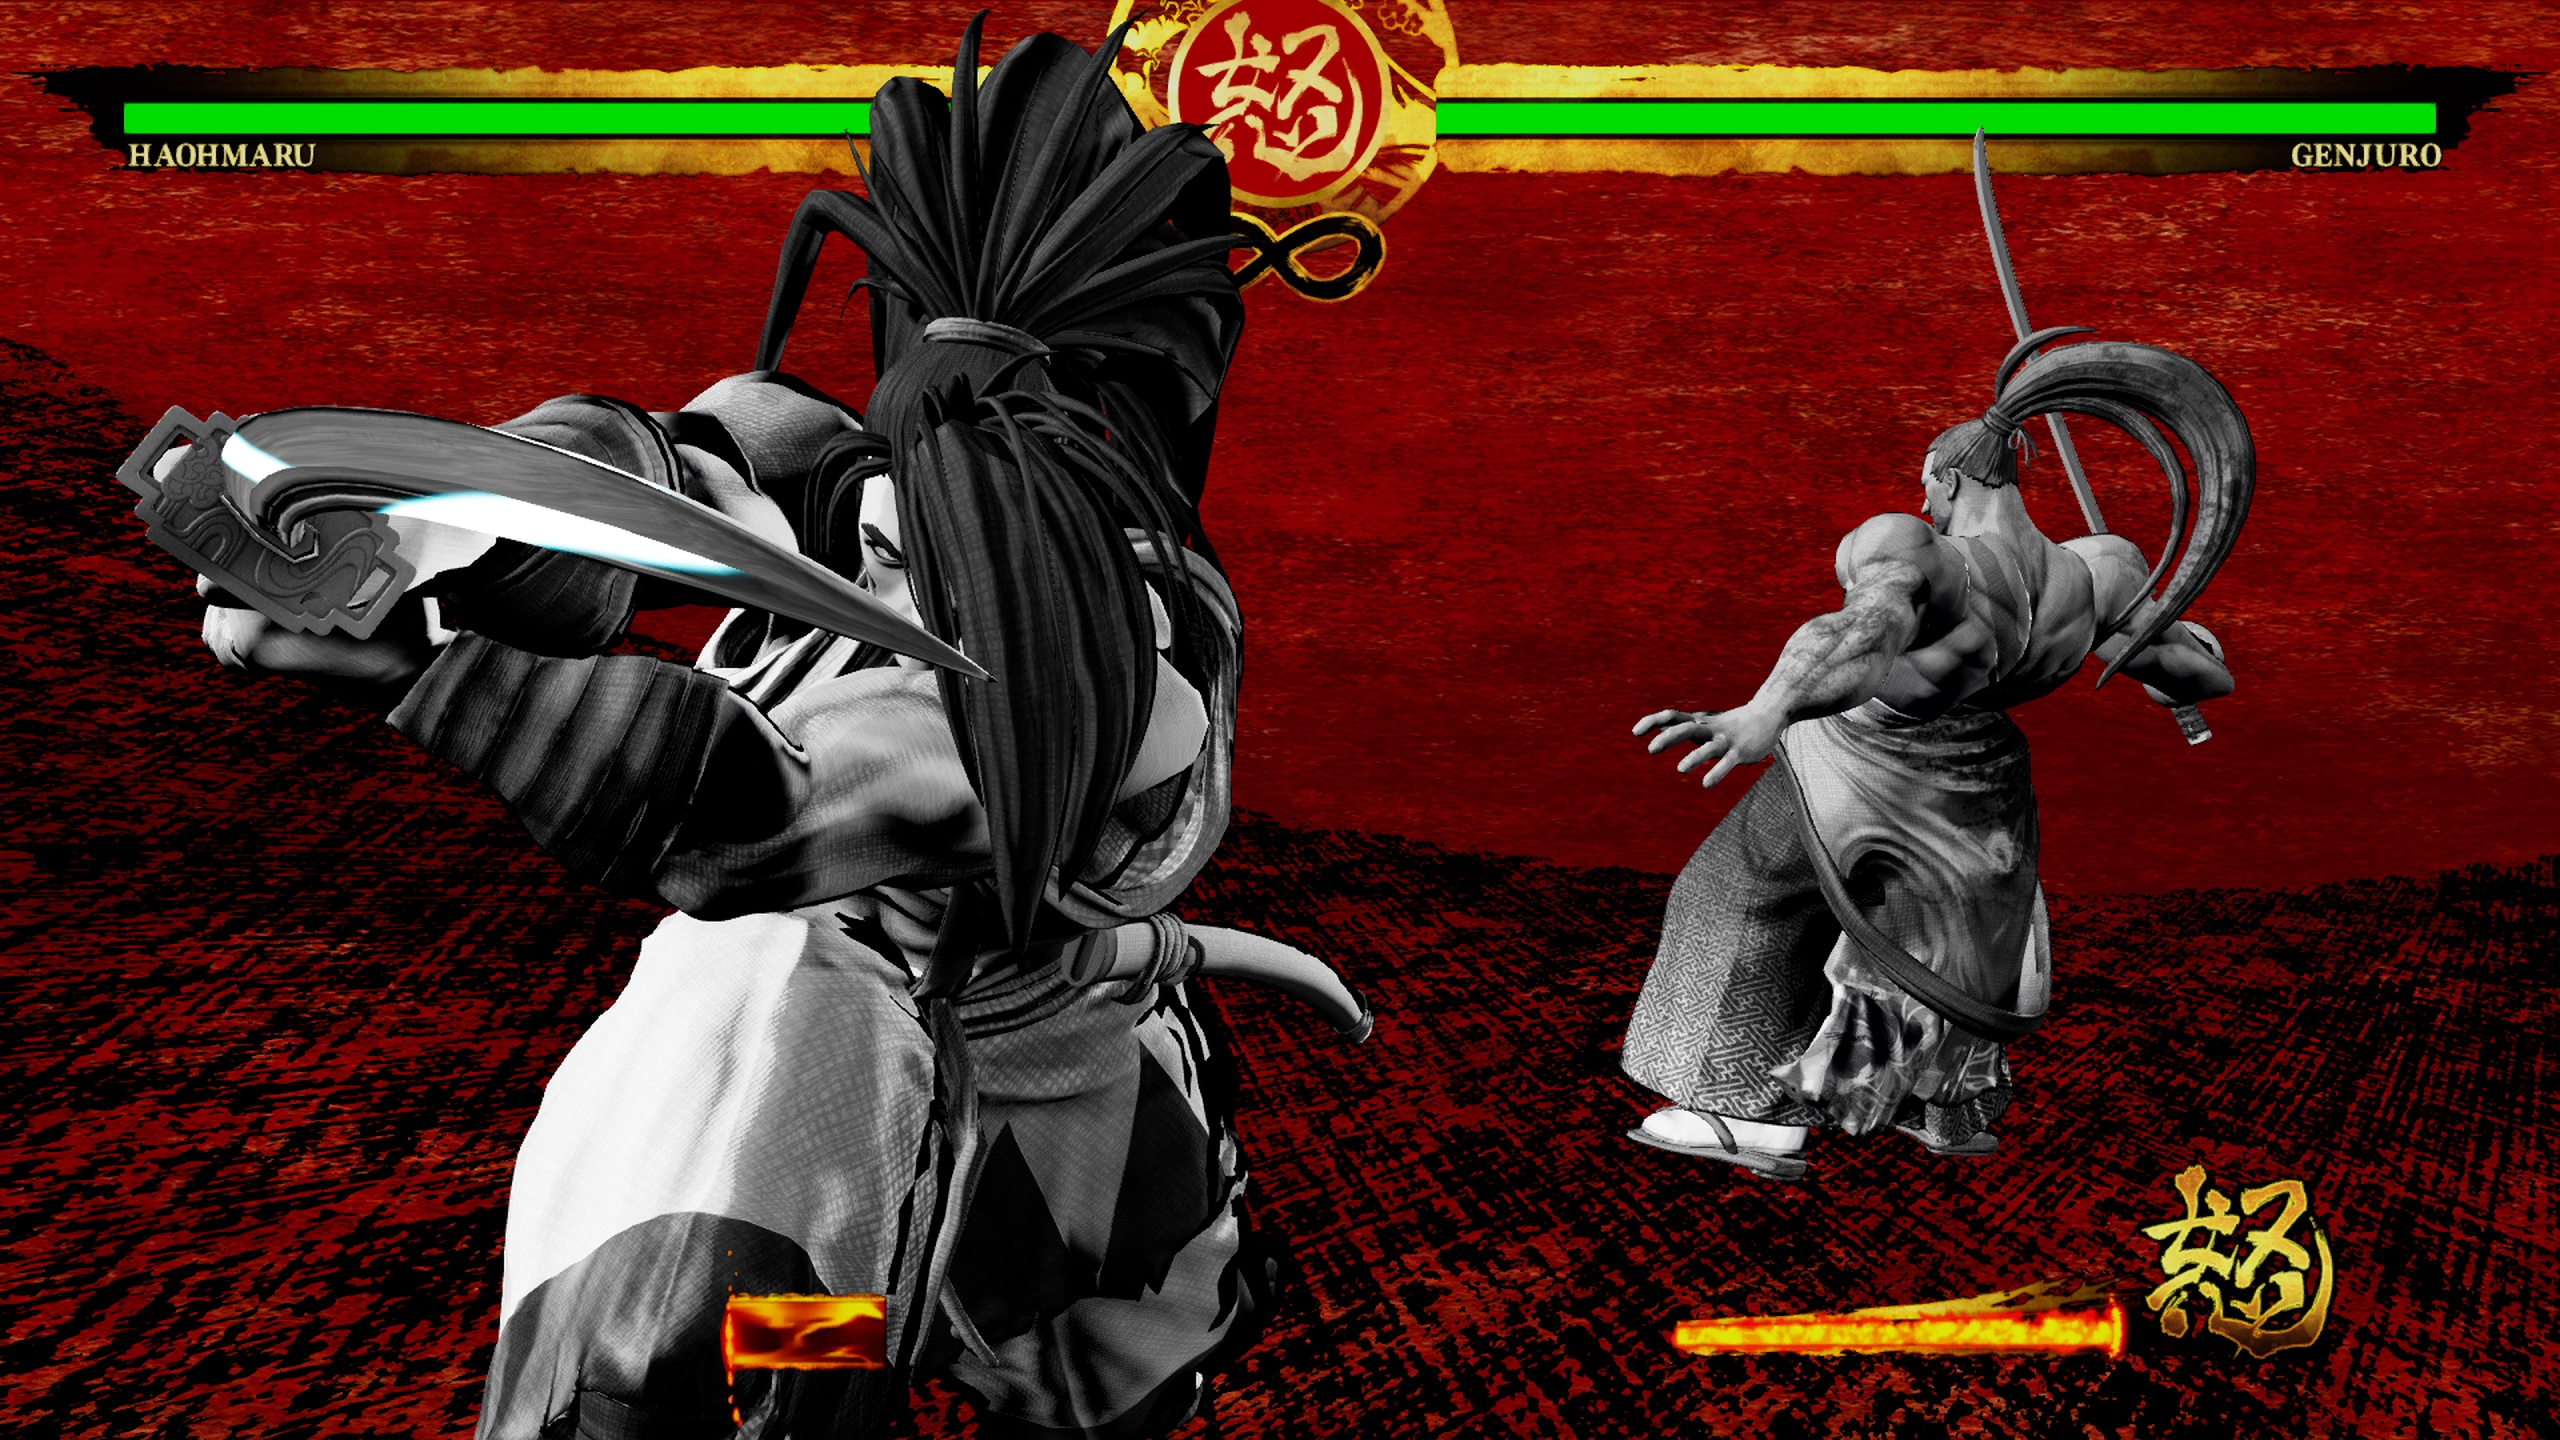 Samurai Shodown is another return to form for SNK screenshot